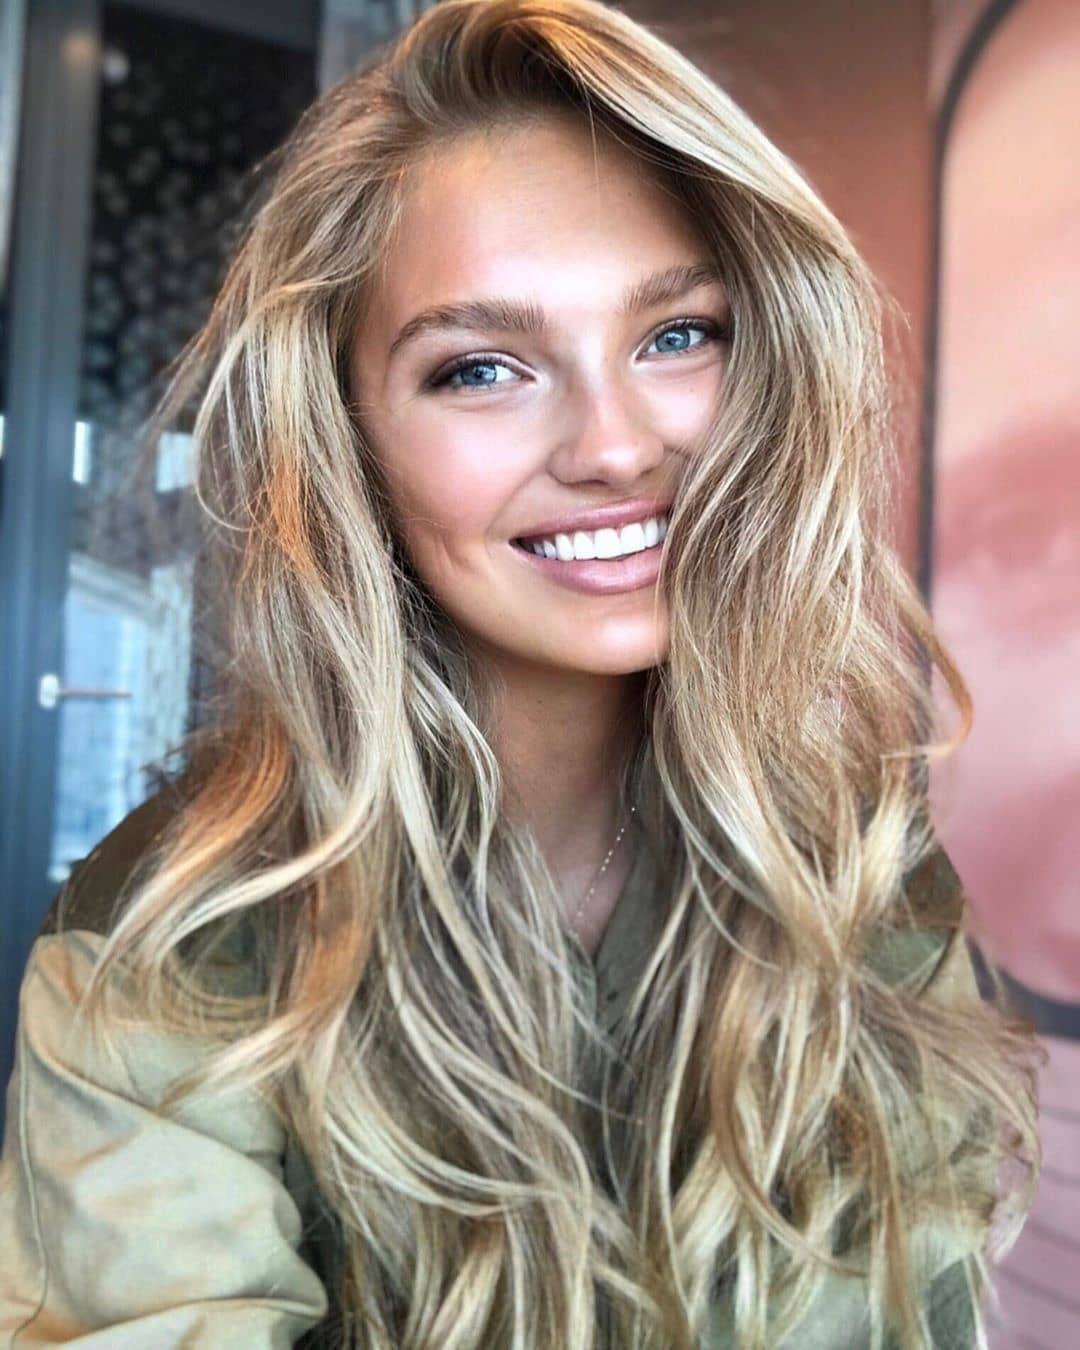 Gefallt 904 Mal 5 Kommentare Manhattan Fashion Styles Manhattan Fashion Styles Auf Instagram Perfect In 2020 Long Hair Styles Hair Styles Long Face Hairstyles